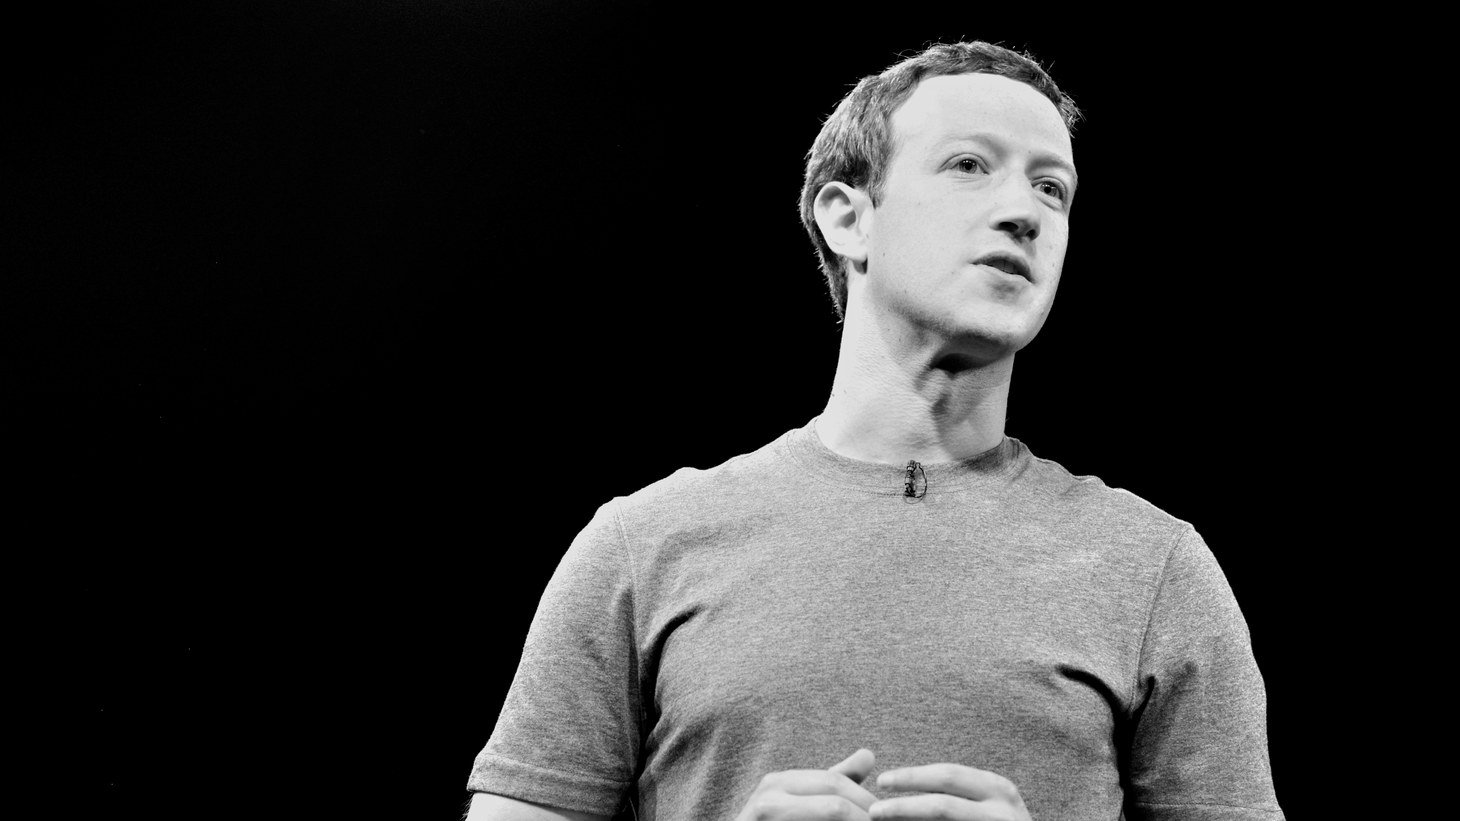 Mark Zuckerberg has committed himself to centrism, rather than steer his company toward his generally liberal employees or the more conservative Facebook users.